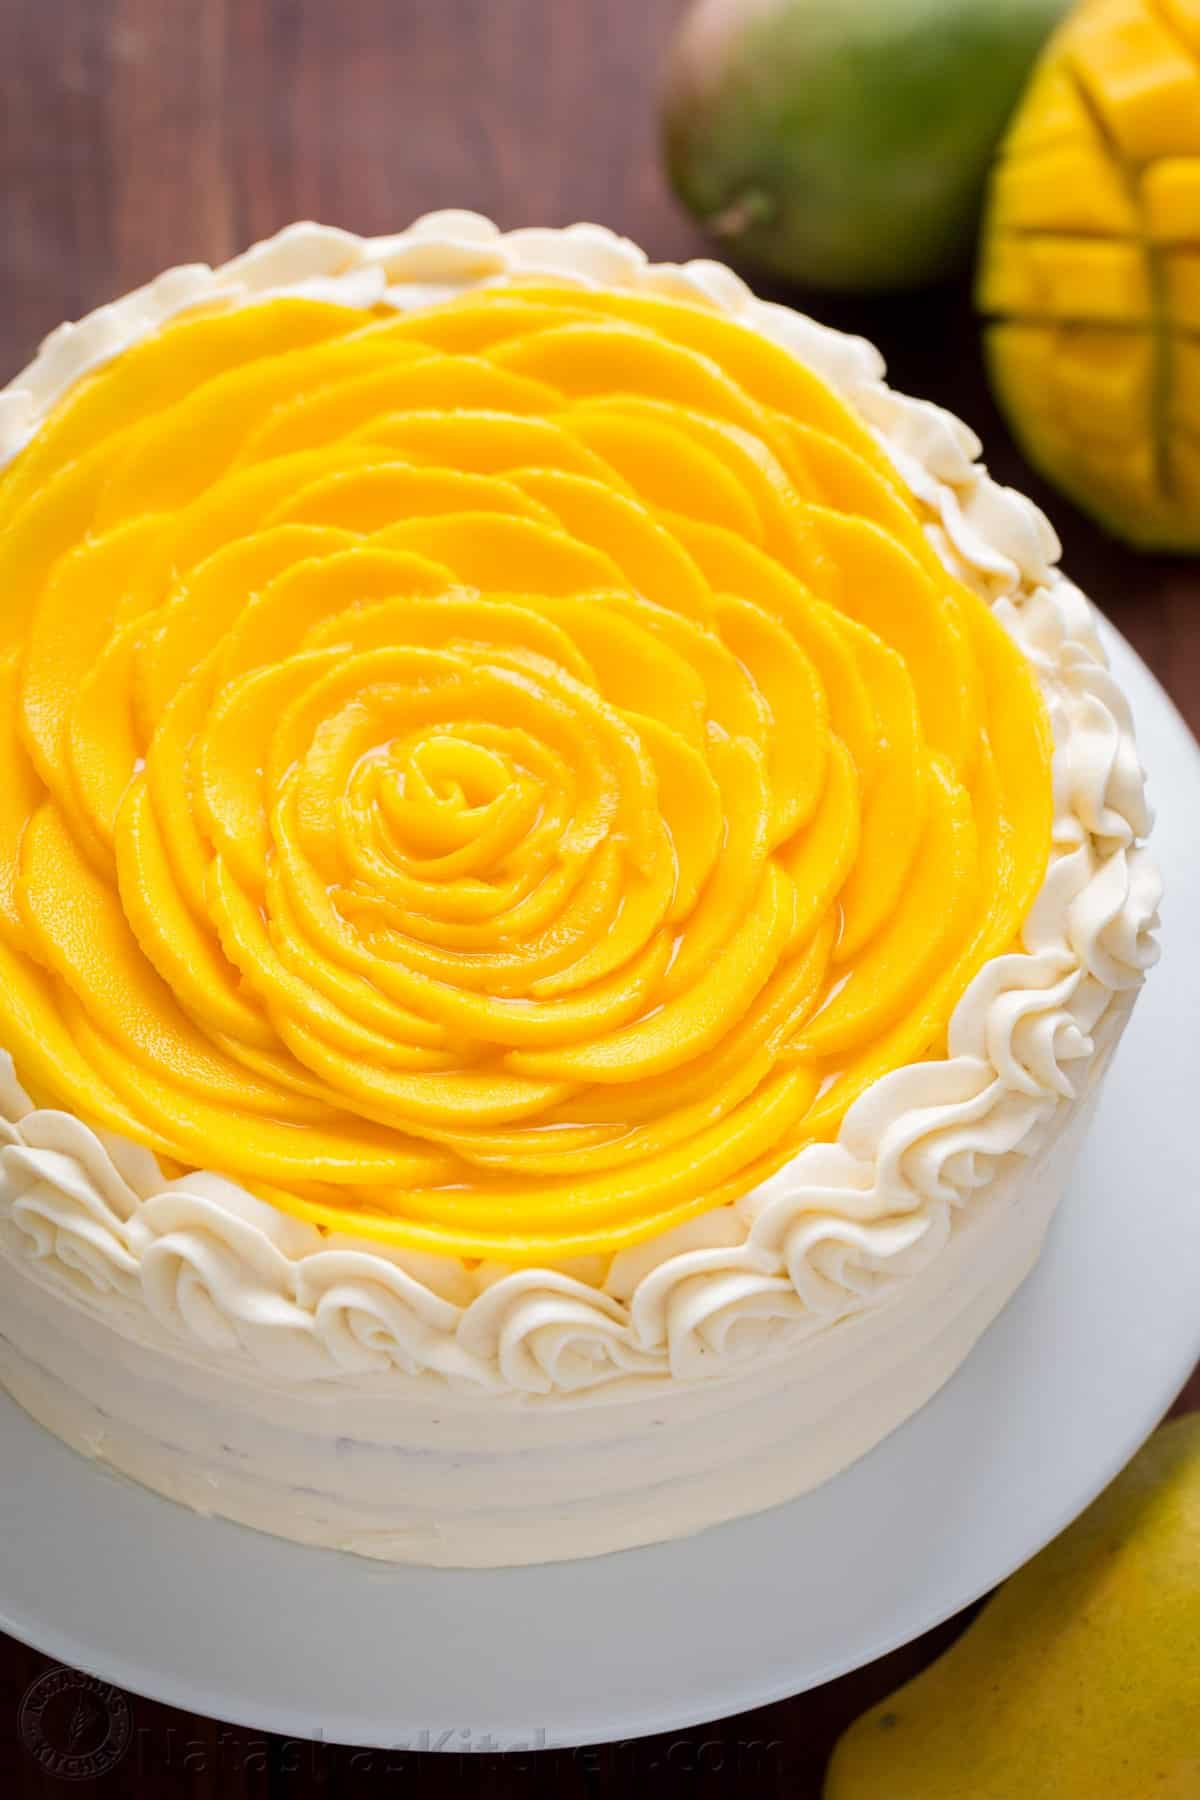 Images For Mango Cake : Mango Cake Recipe (VIDEO) - NatashasKitchen.com